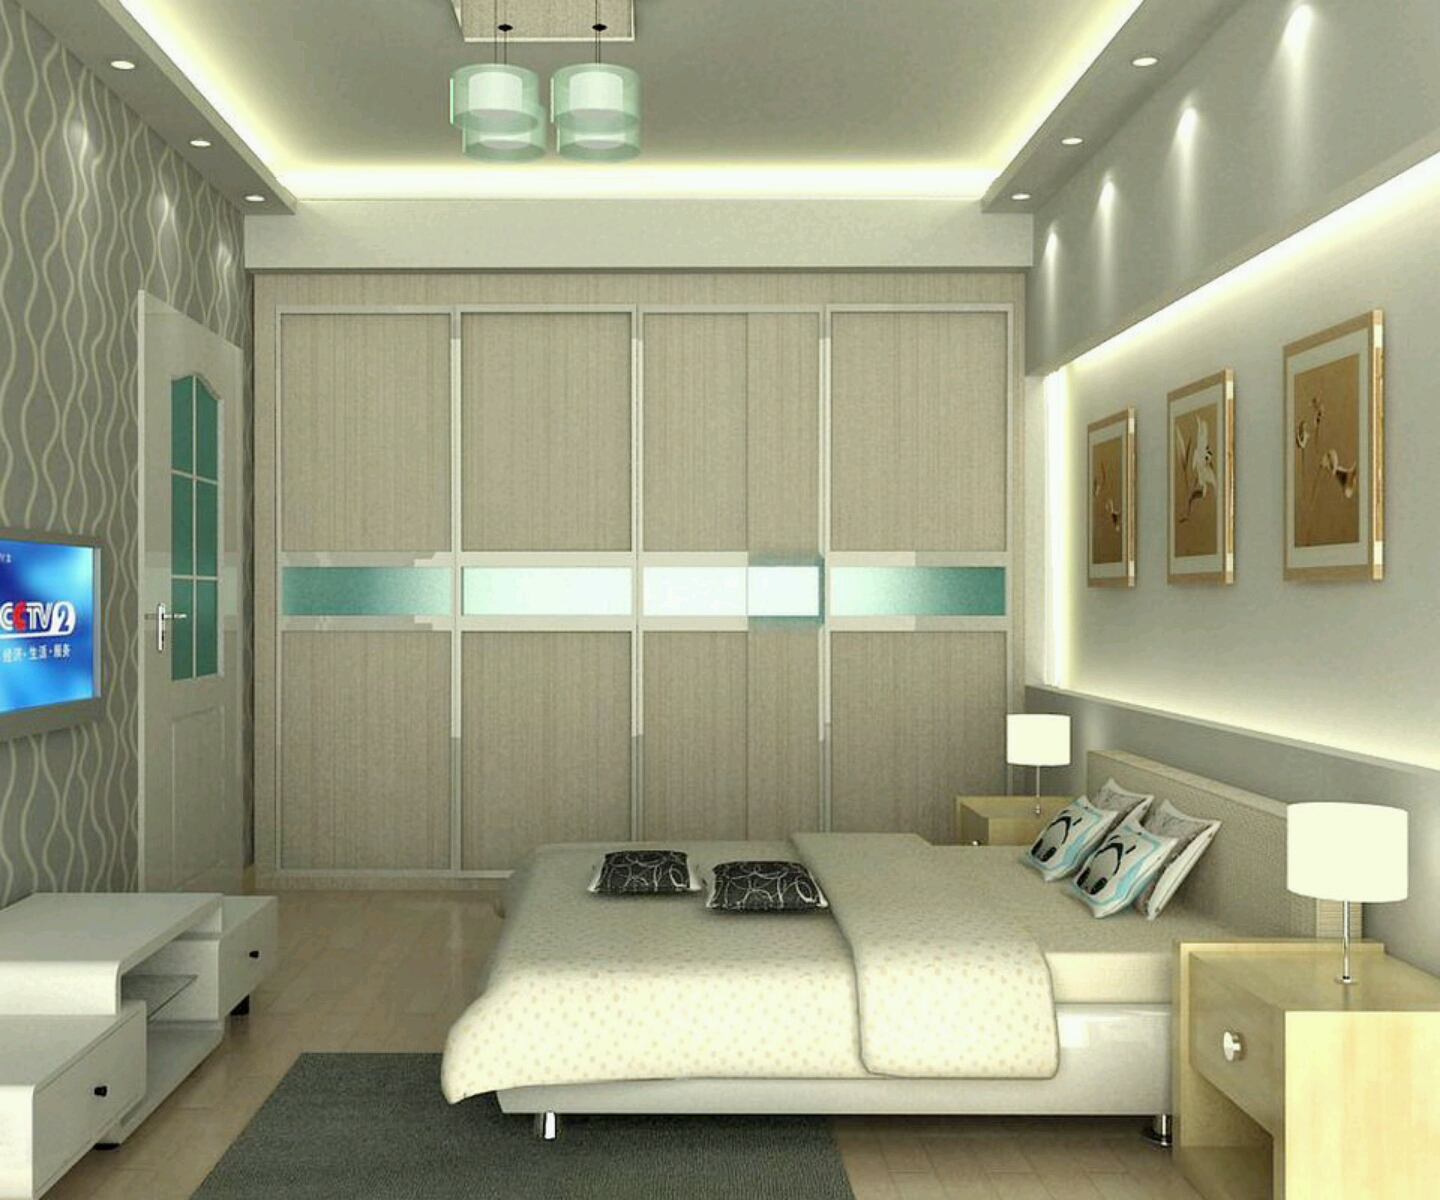 New home designs latest modern homes bedrooms designs for Best bed design images